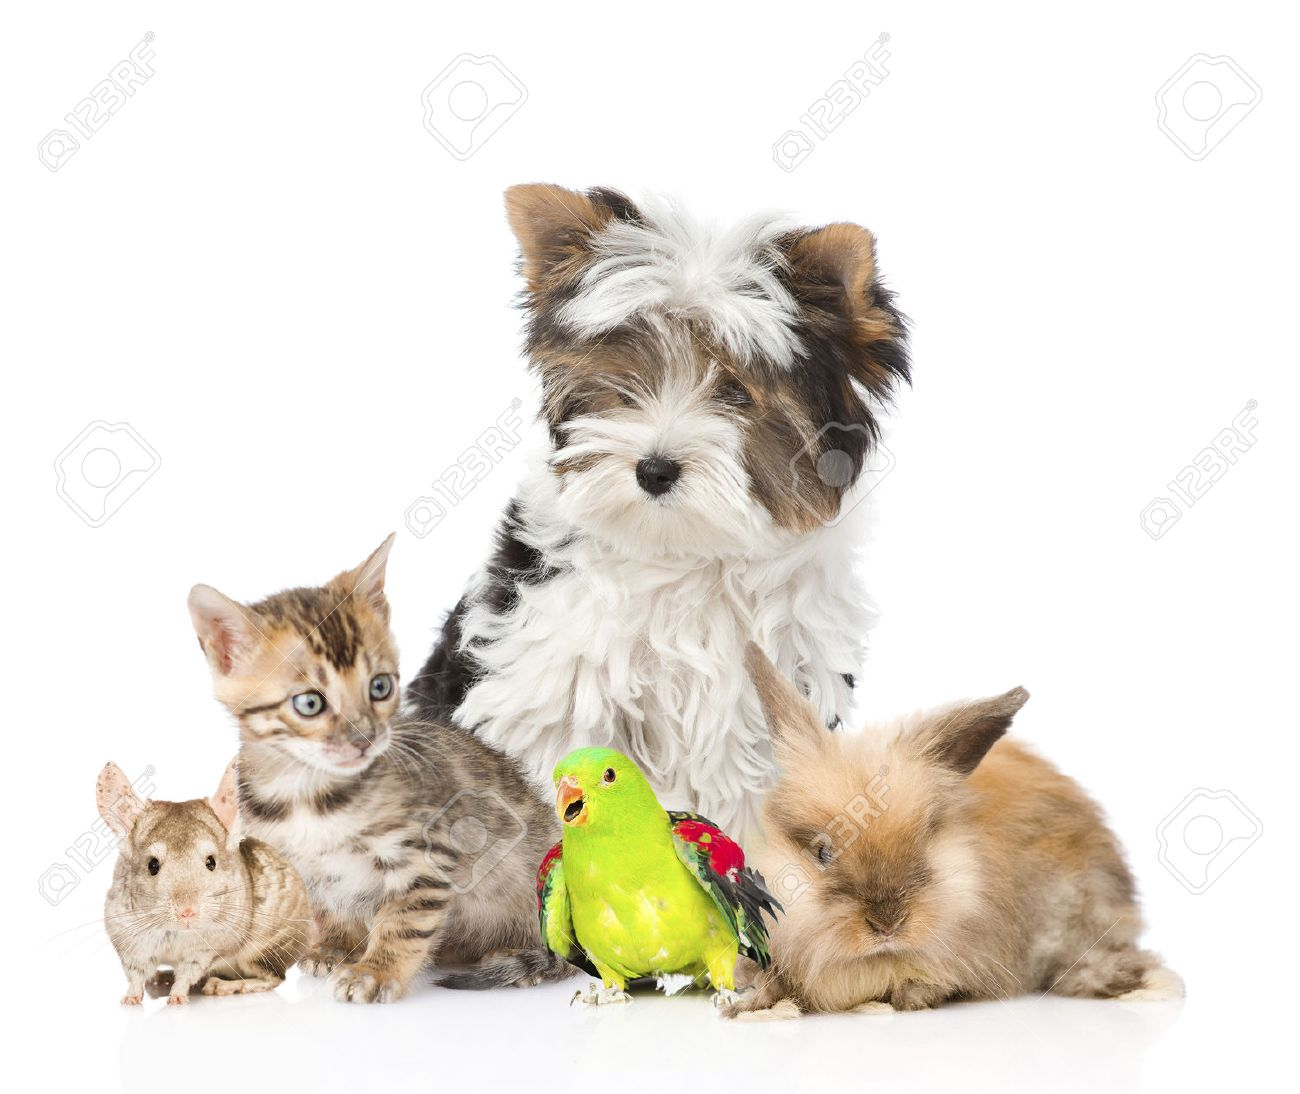 Domestic Animals Stock Photos And Images 123rf